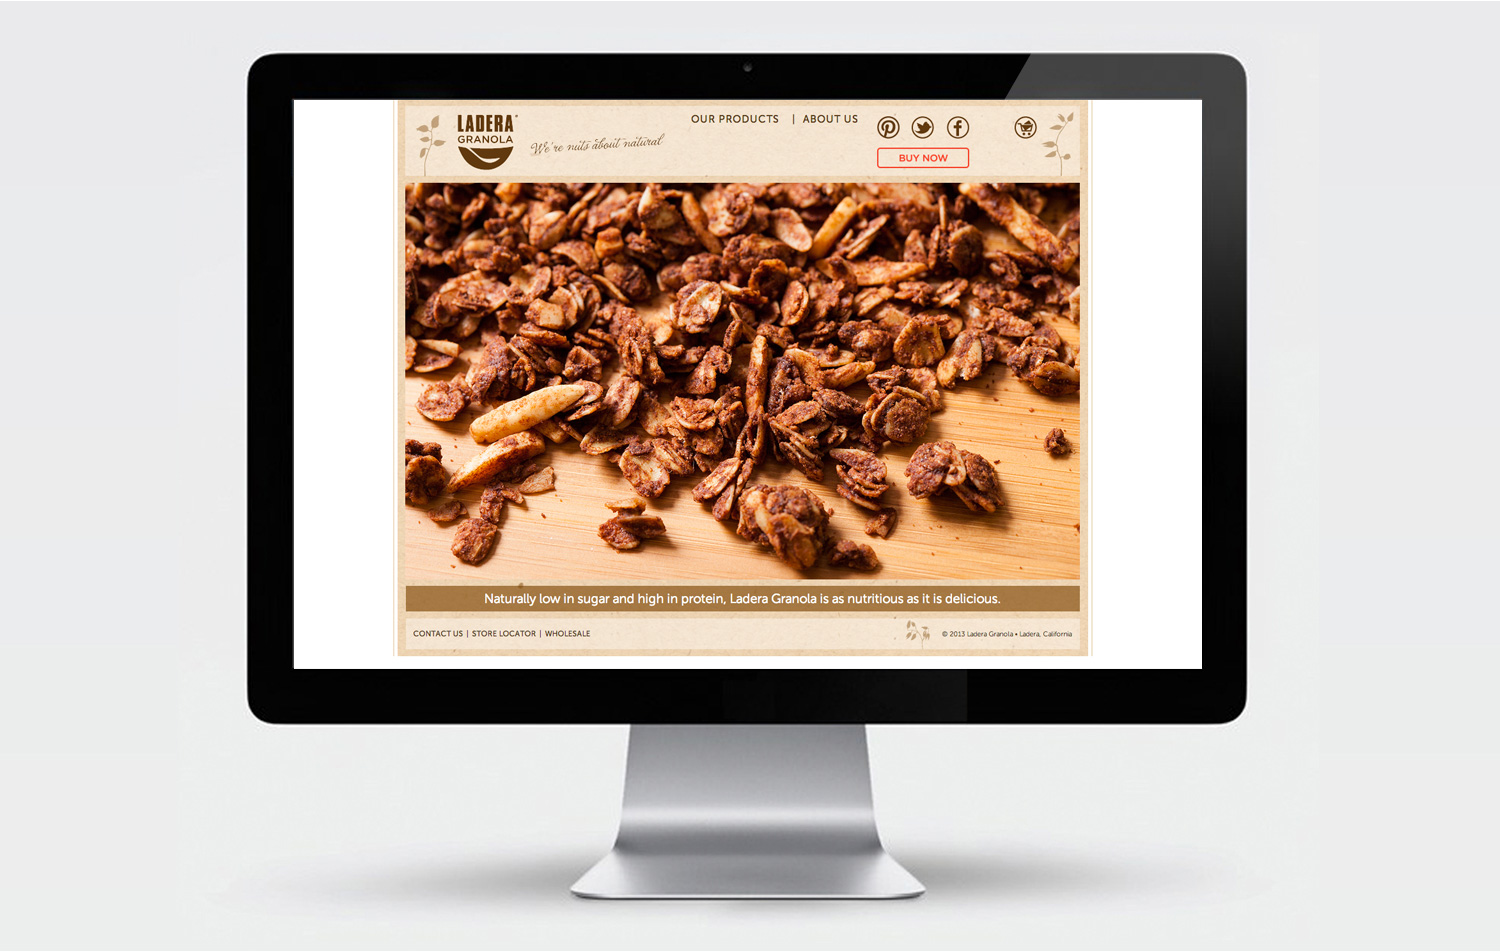 Ladera Granola website